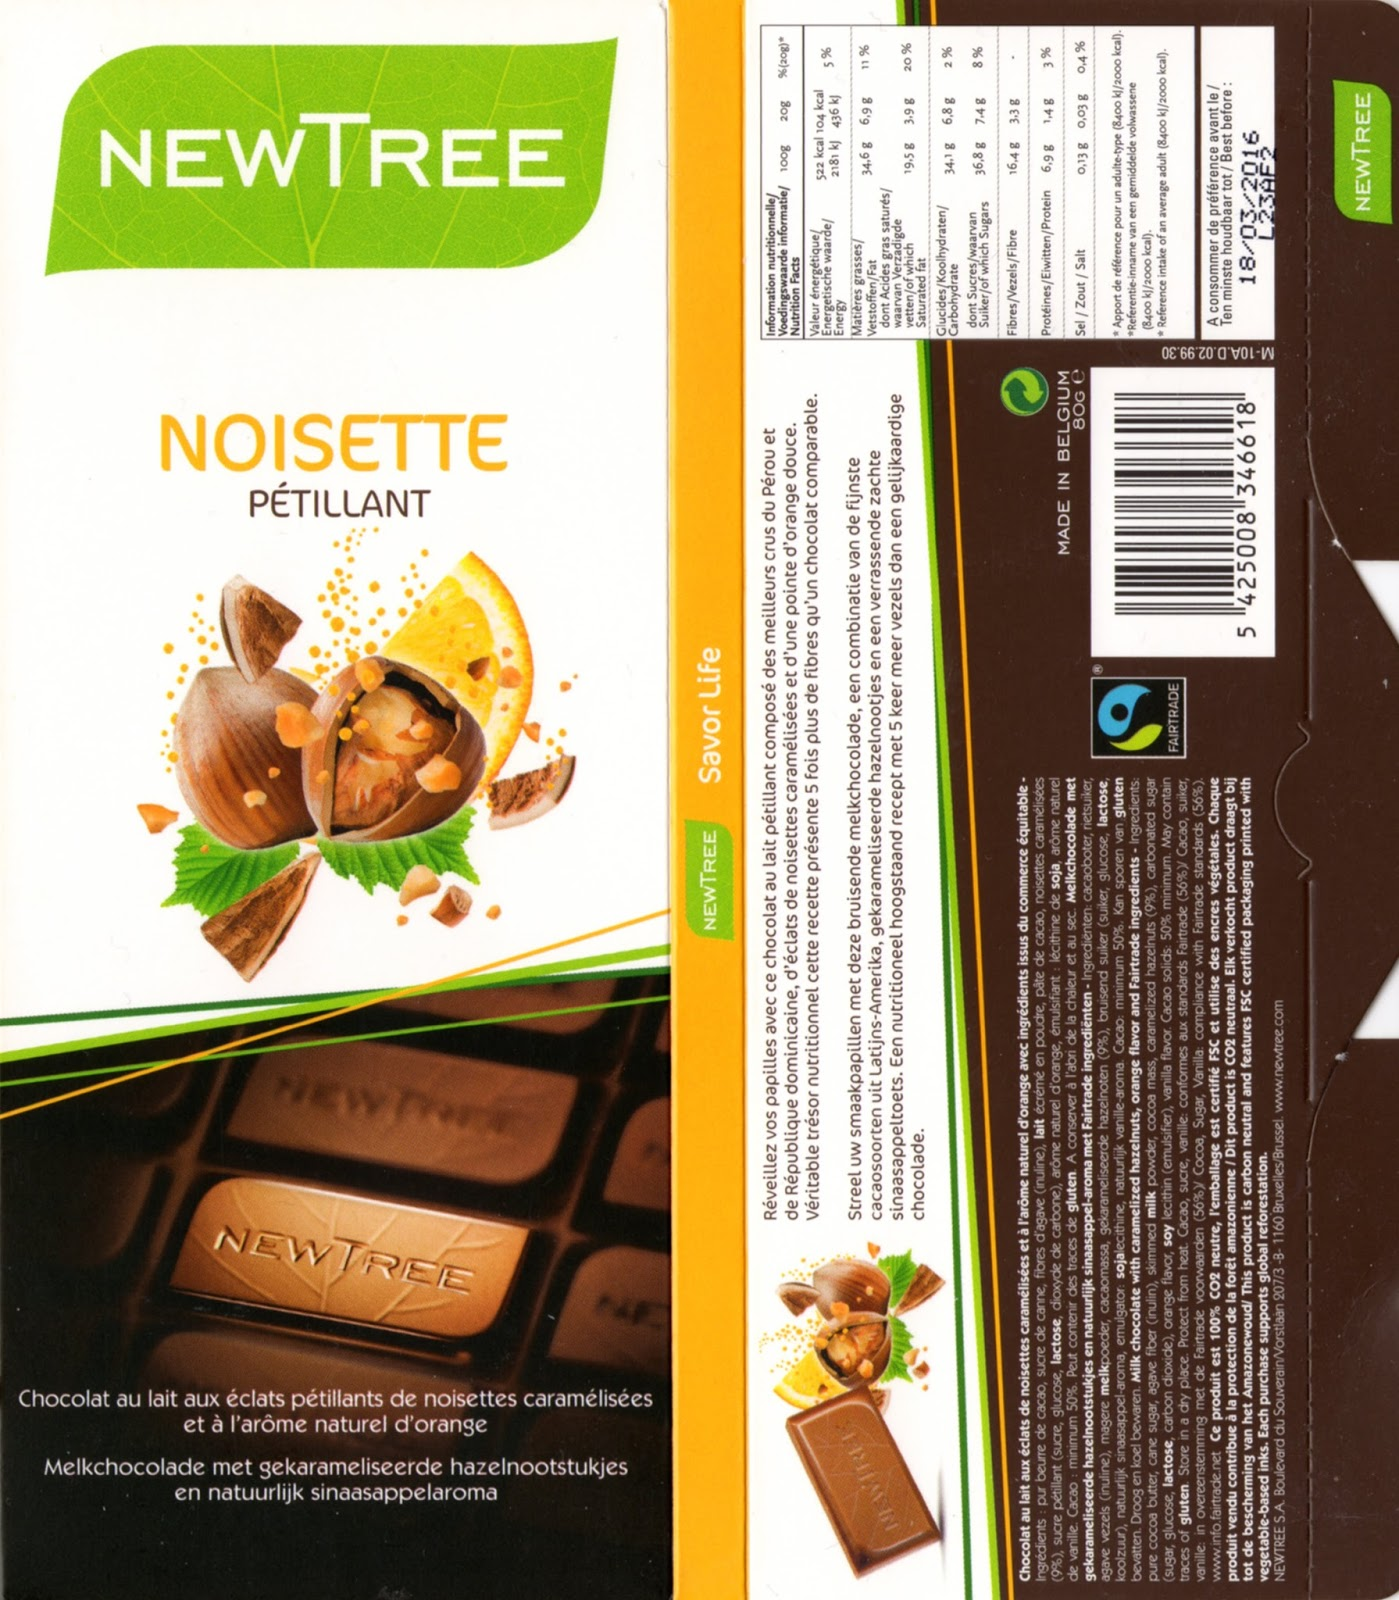 tablette de chocolat lait gourmand newtree lait noisette pétillant